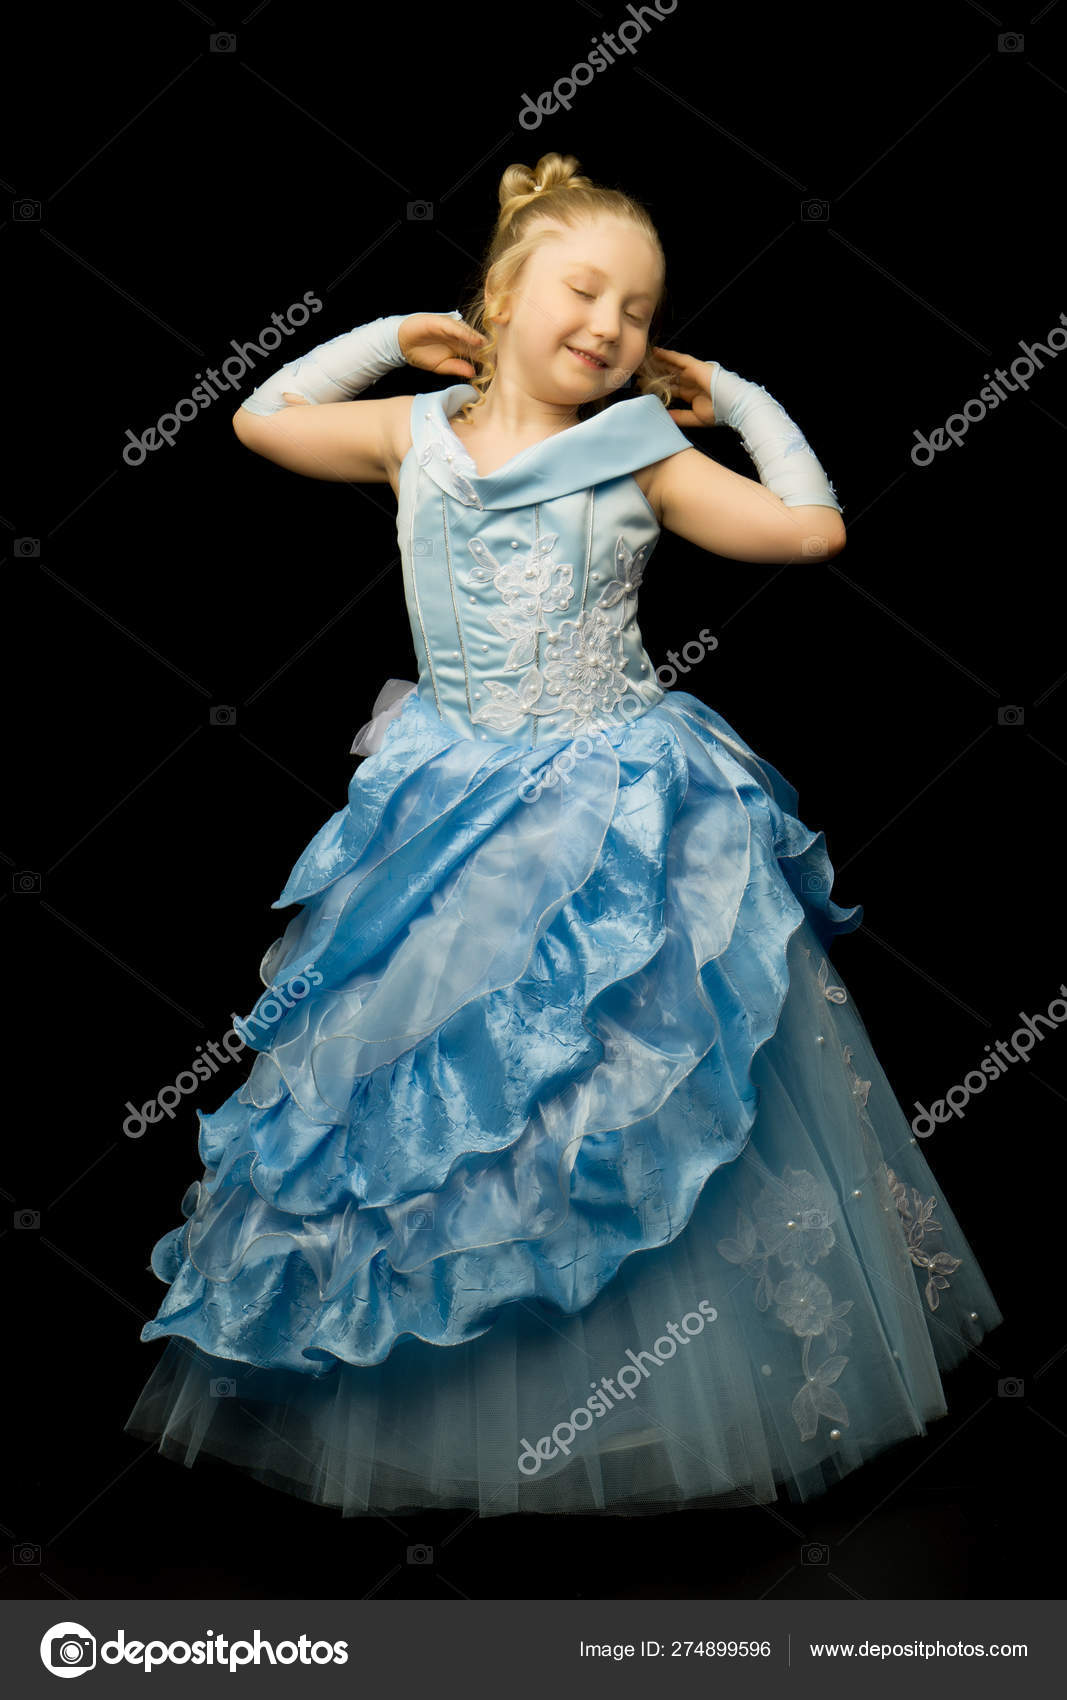 A Little Girl In A Long Elegant Dress Of A Princess On A Black Stock Photo C Lotosfoto1 274899596